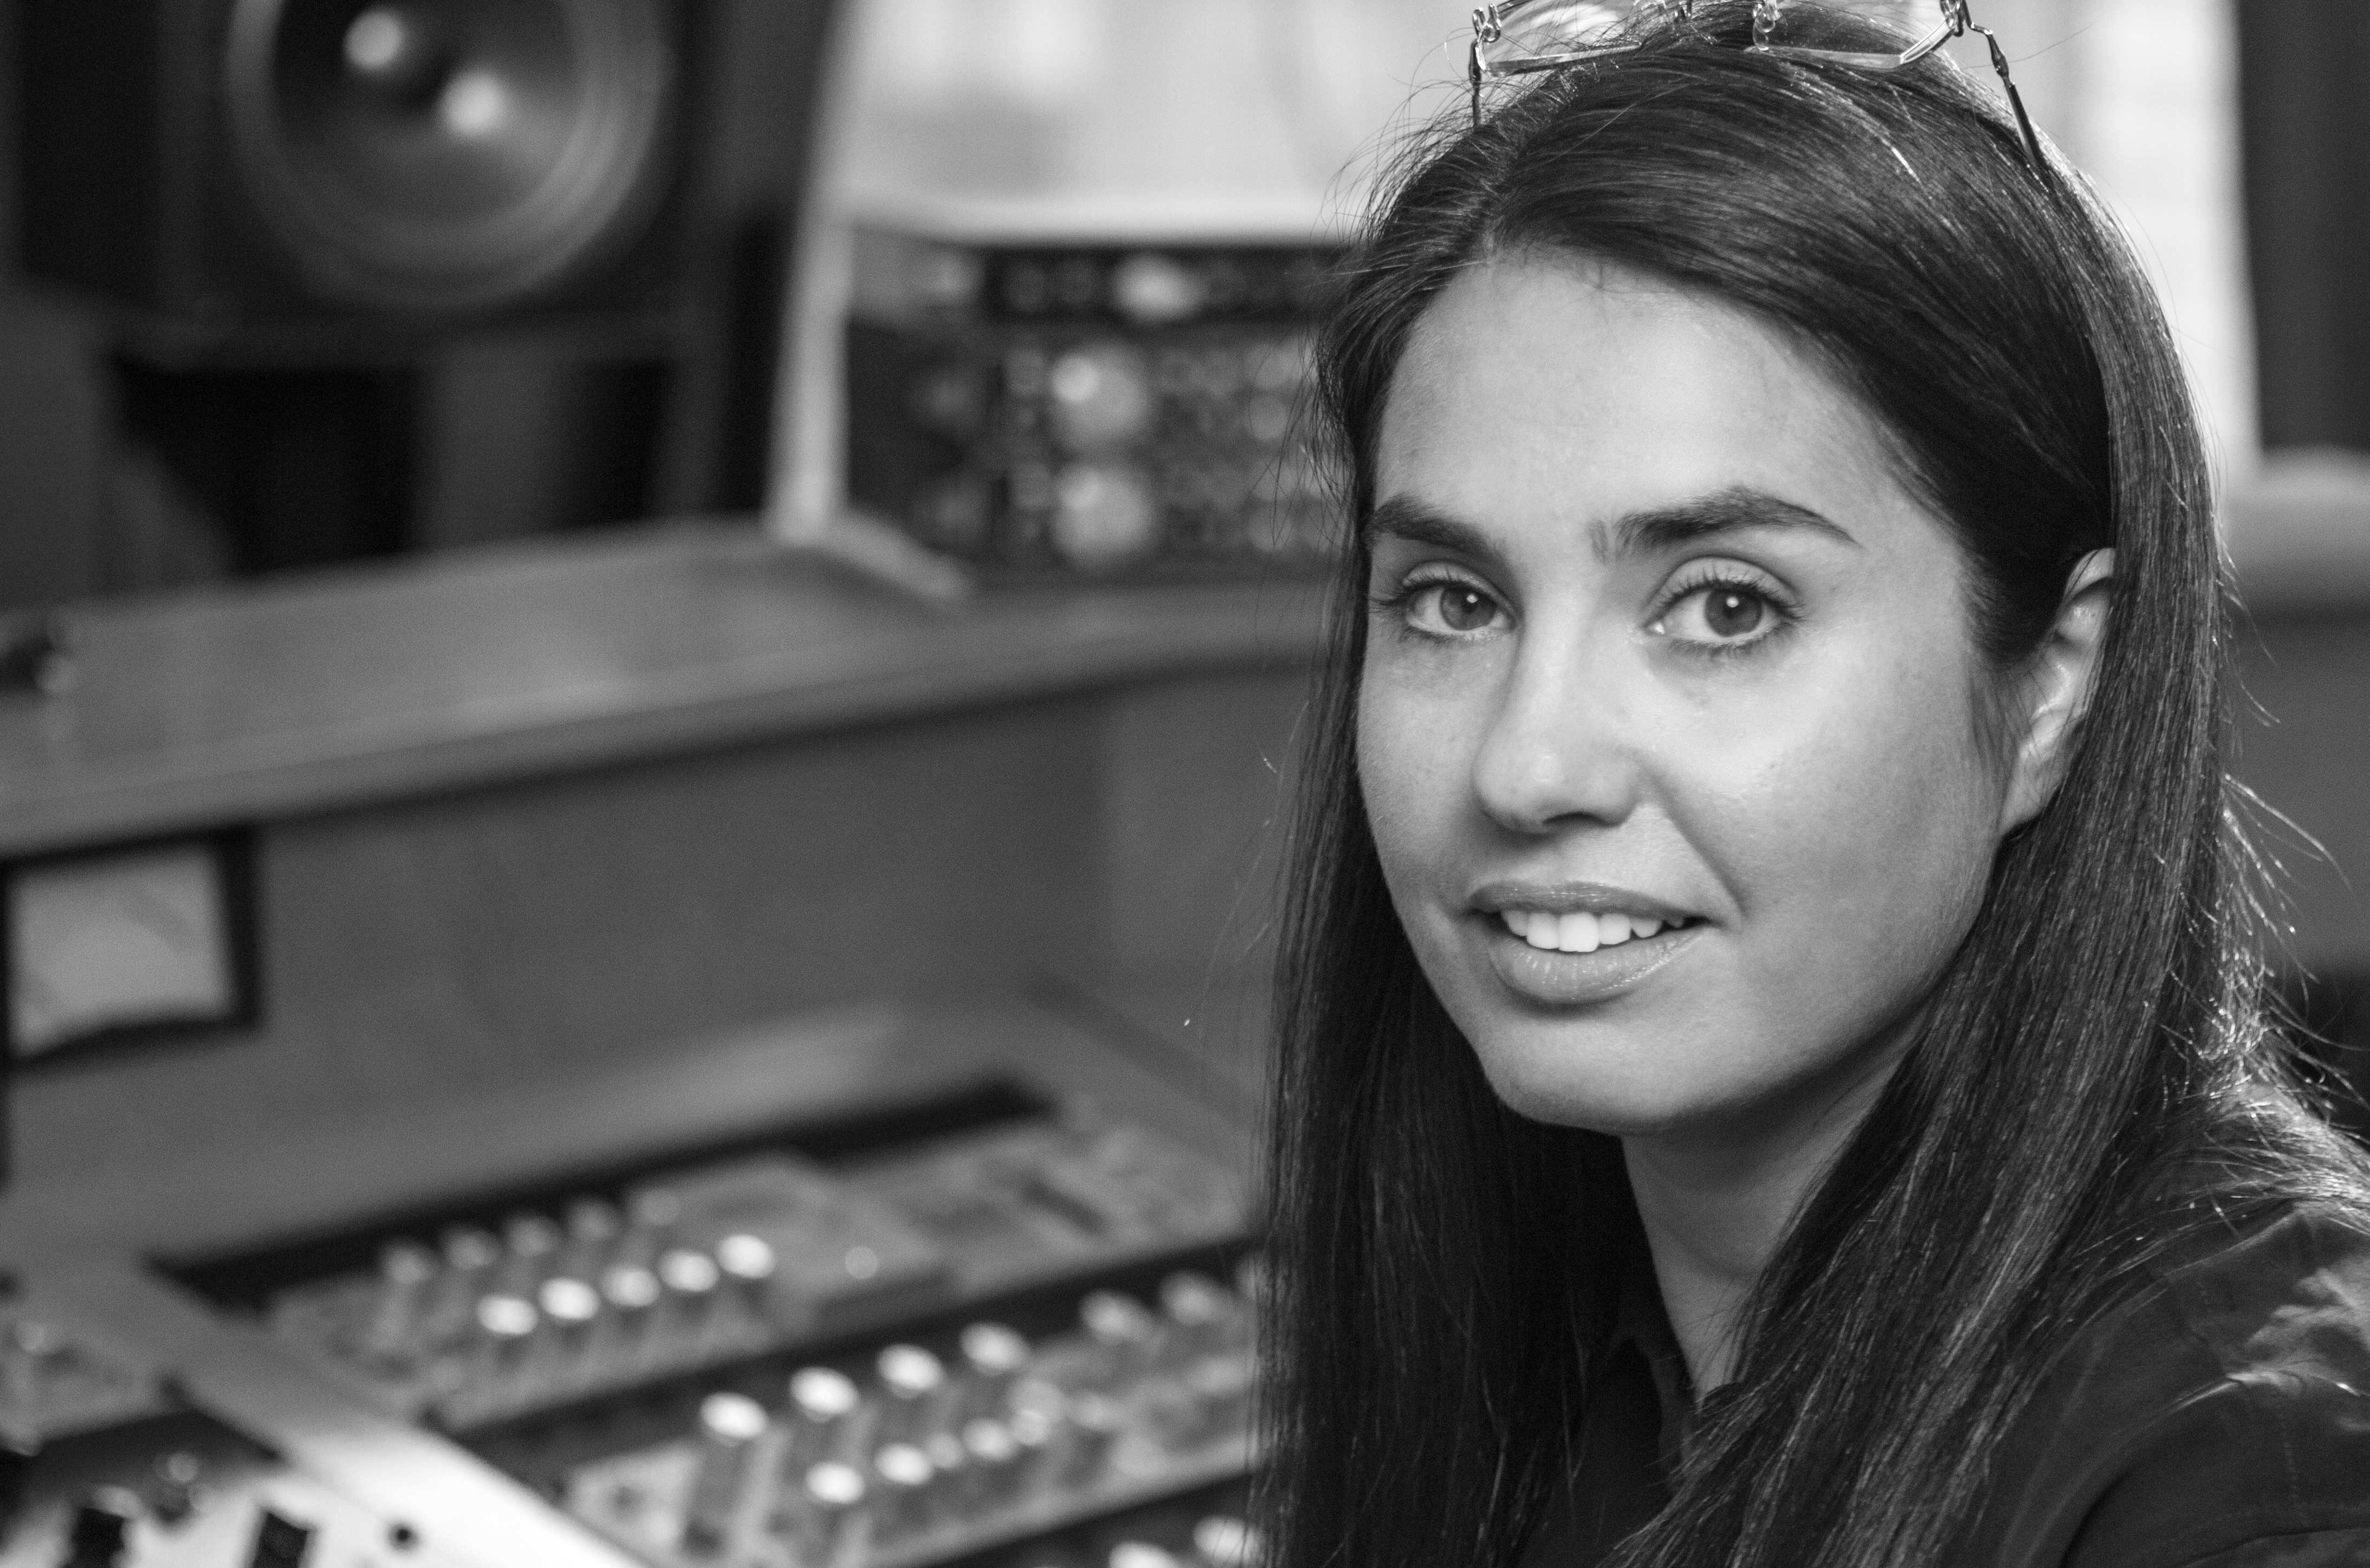 Caption: Emily Lazar, Mastering Engineer, Credit: Jim Sullos